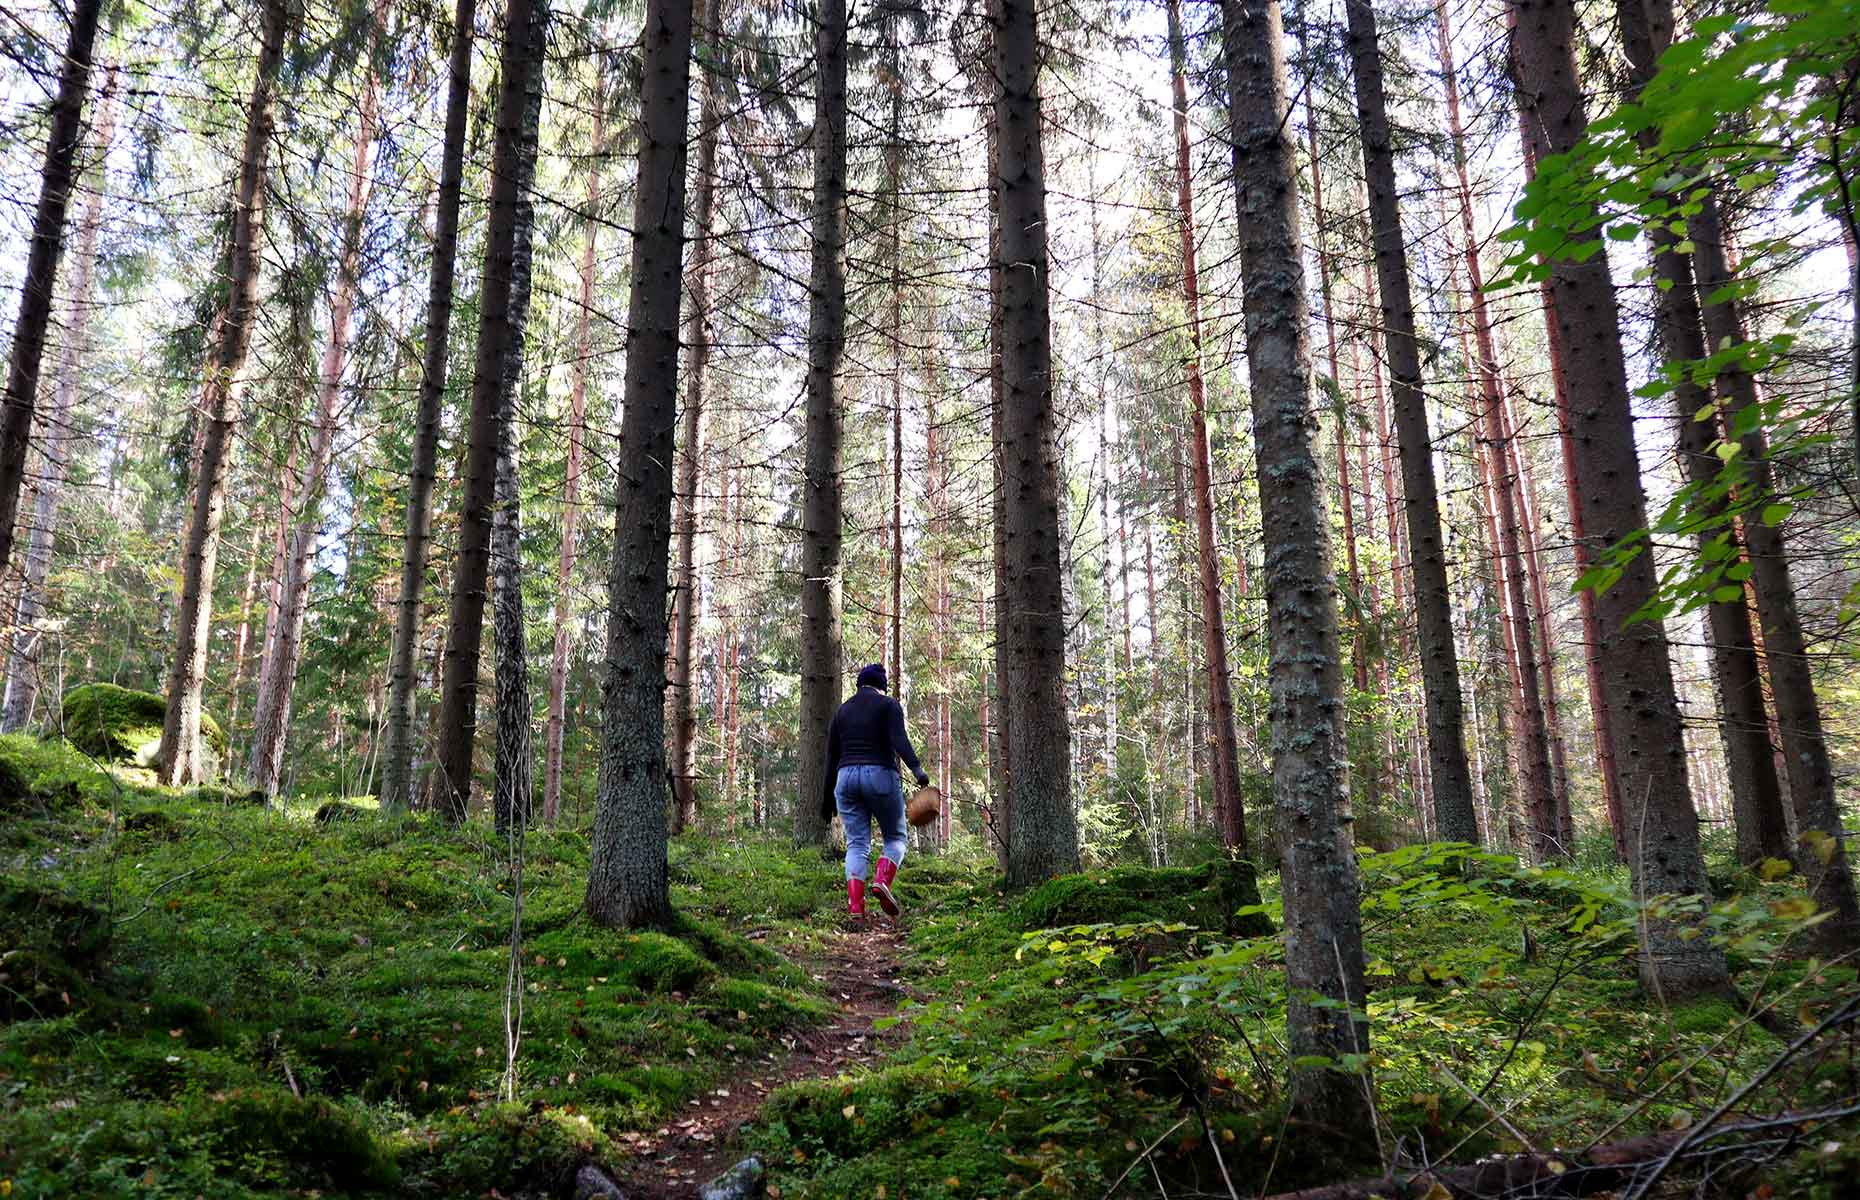 Foraging in the forest (Image: SariMe/Shutterstock)